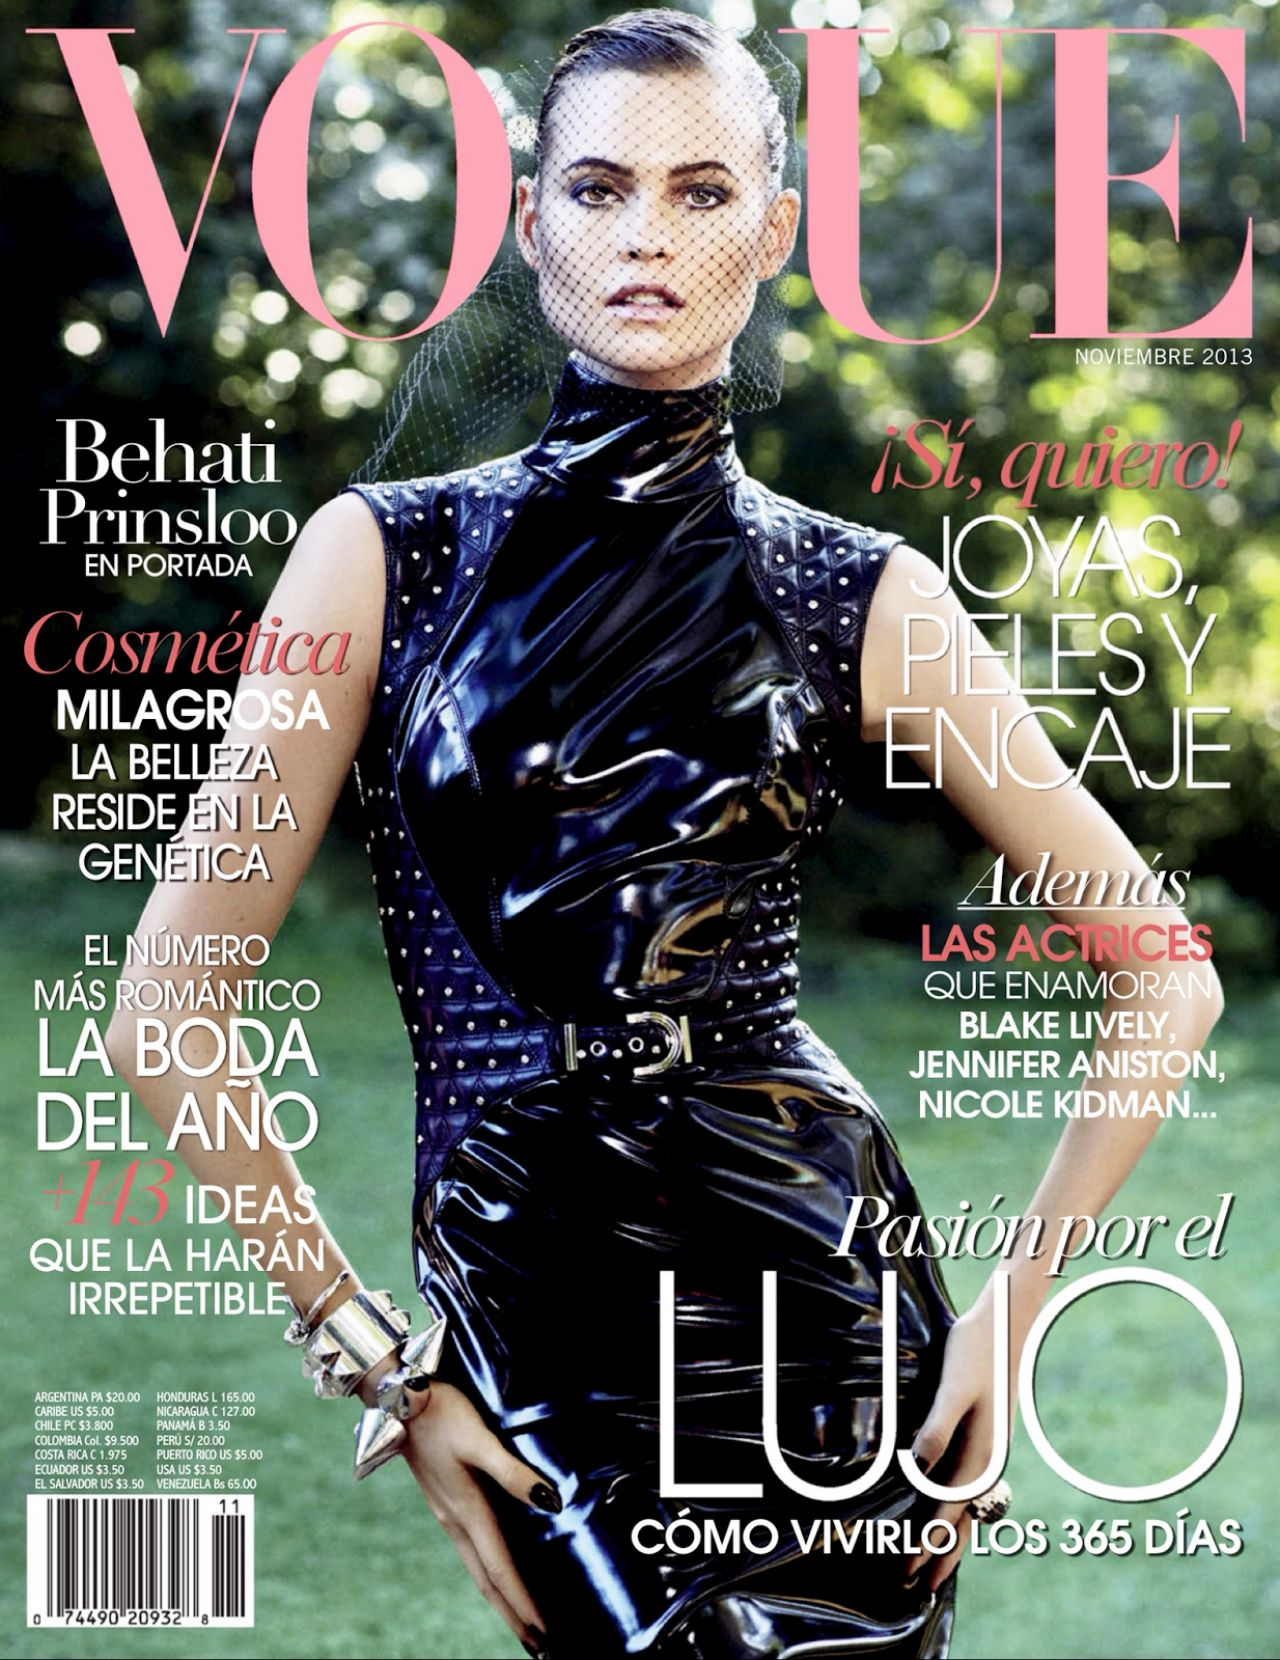 Behati Prinsloo - VOGUE Magazine (Mexico) - November 2013 Issue